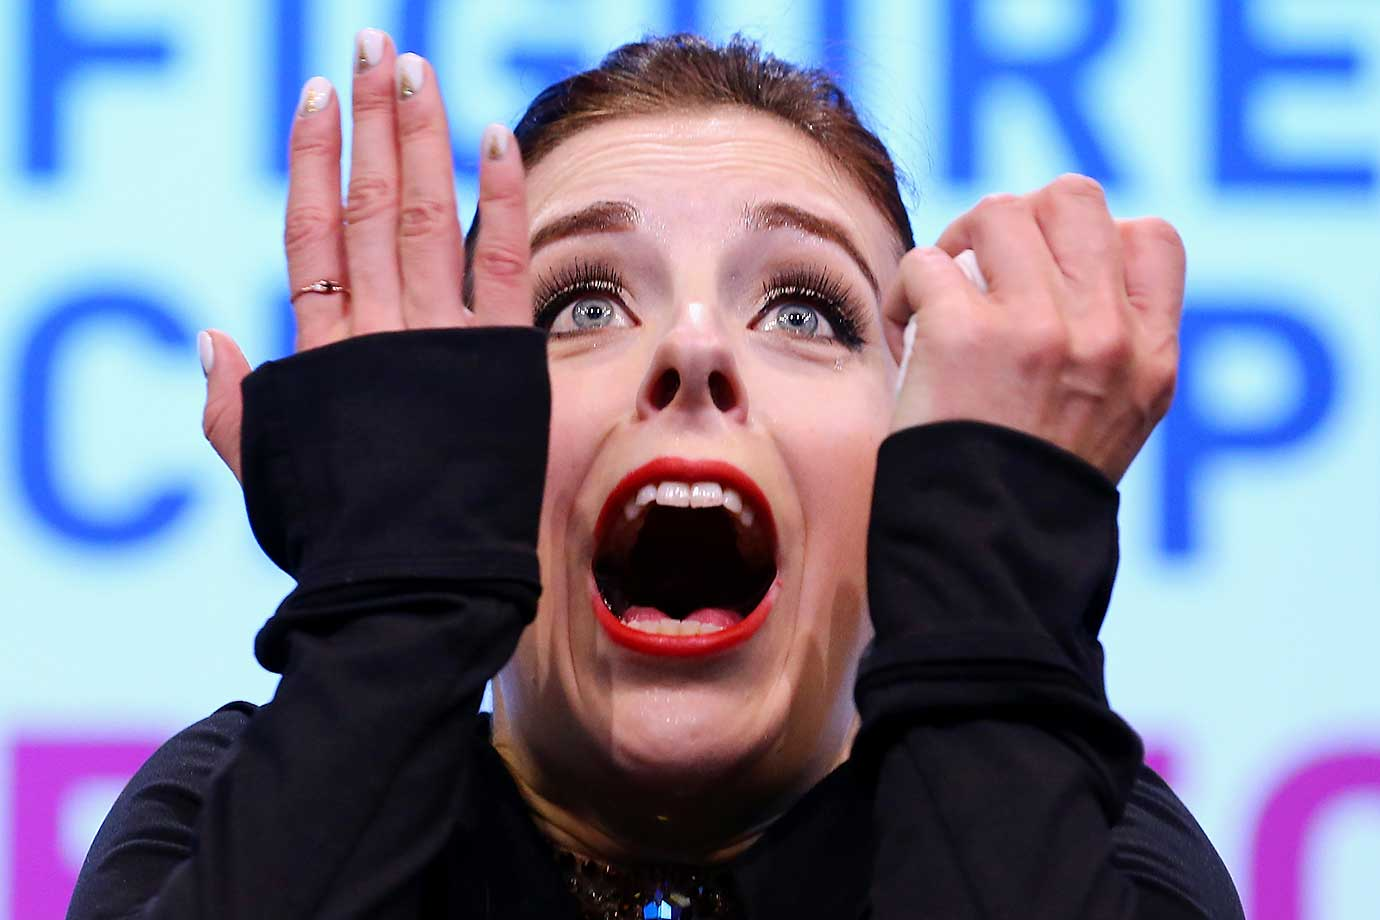 Ashley Wagner of the U.S. reacts after hearing her score in the Ladies Free Skate program at the world championships. She would go on to finish second, behind Evgenia Medvedeva of Russia.